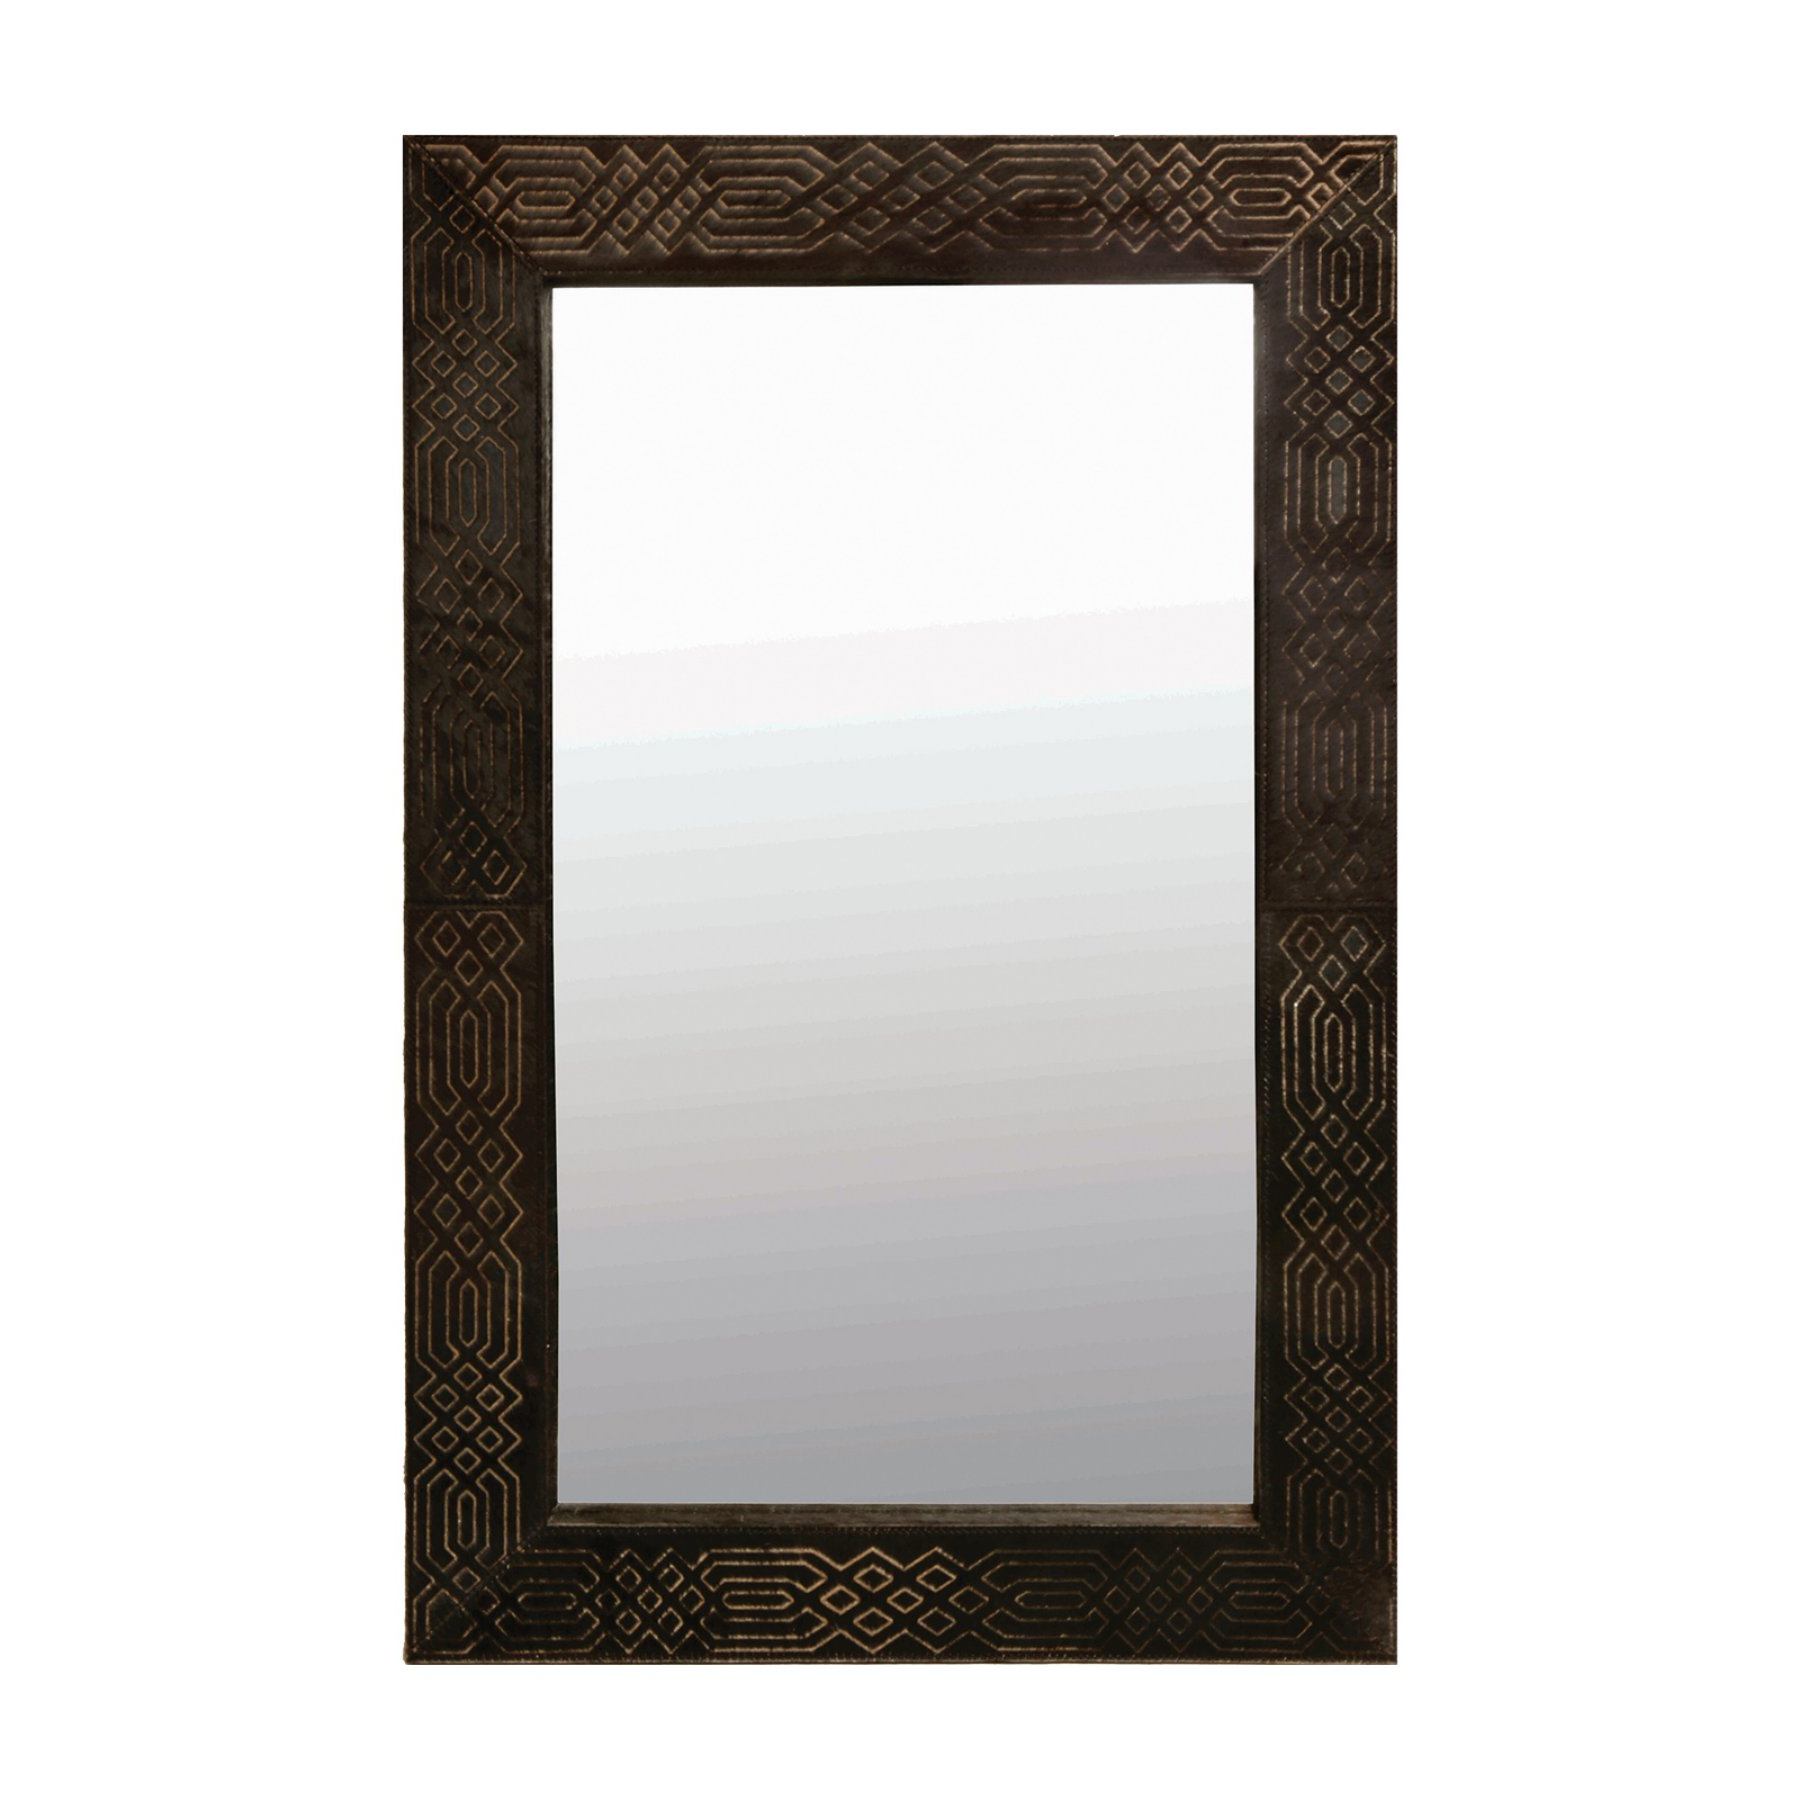 Leather Framed Wall Mirrors In Preferred Renwil Cassini Black And White Hair On Leather Framed Wall Mirror (View 11 of 20)